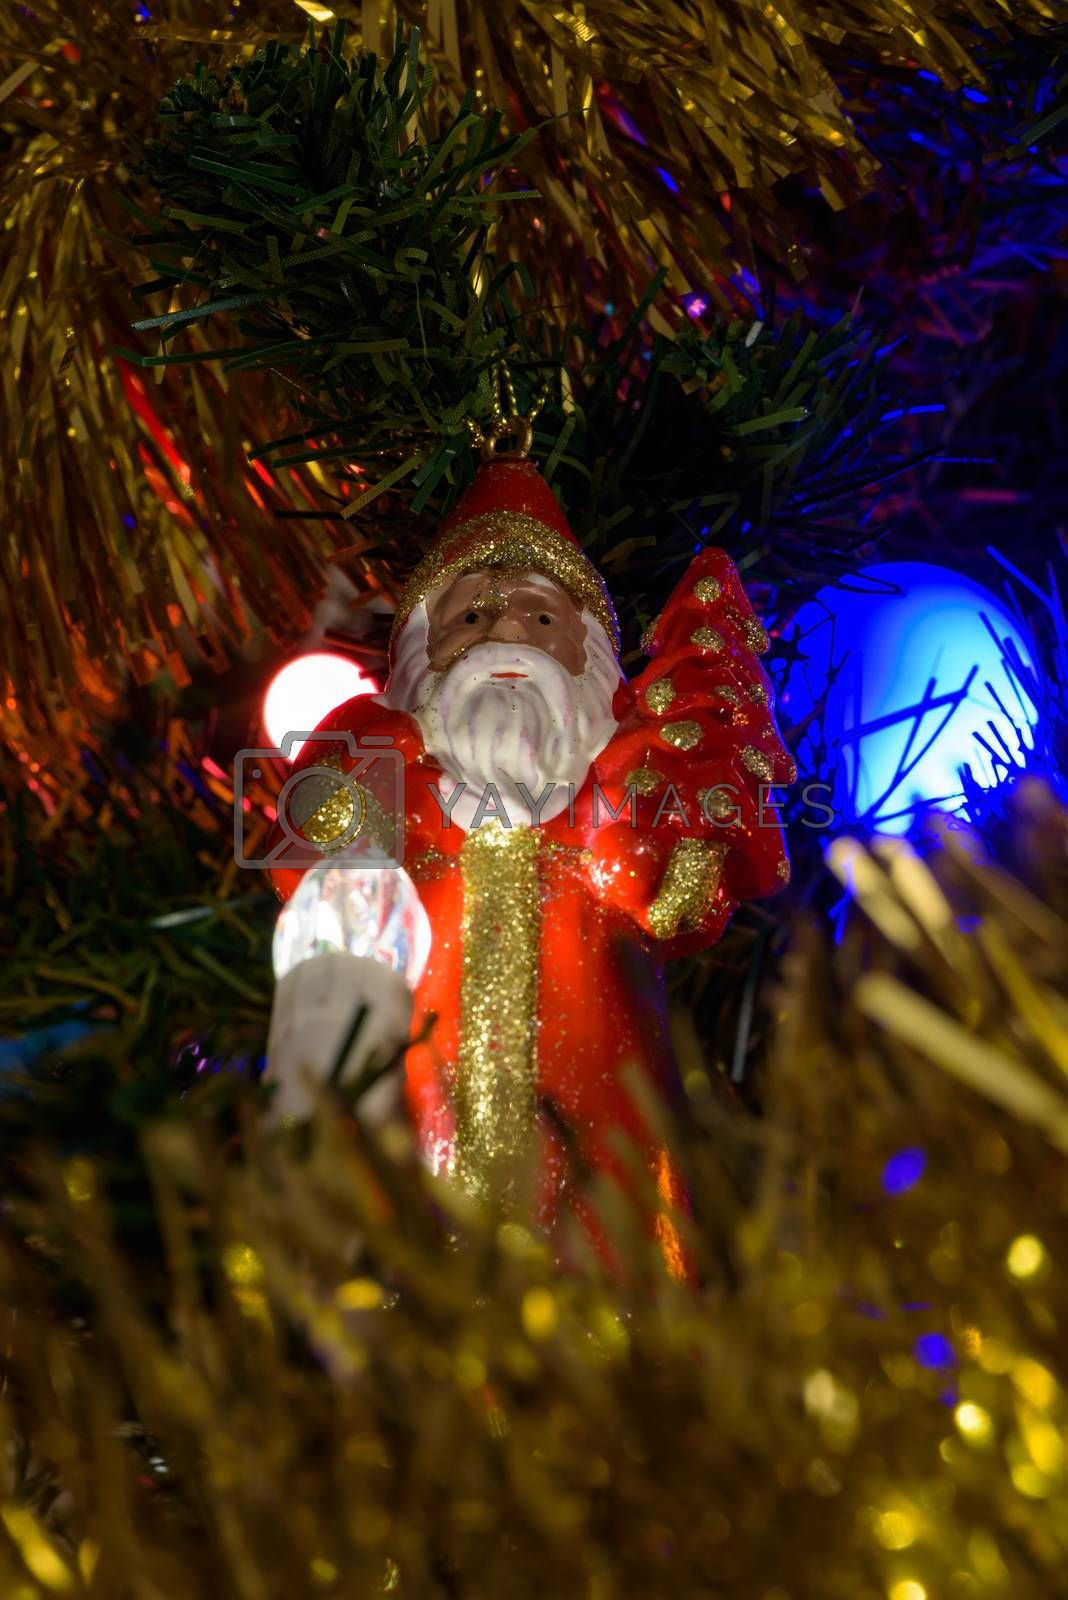 Closeup of Santa Claus figure on a Christmas tree as background